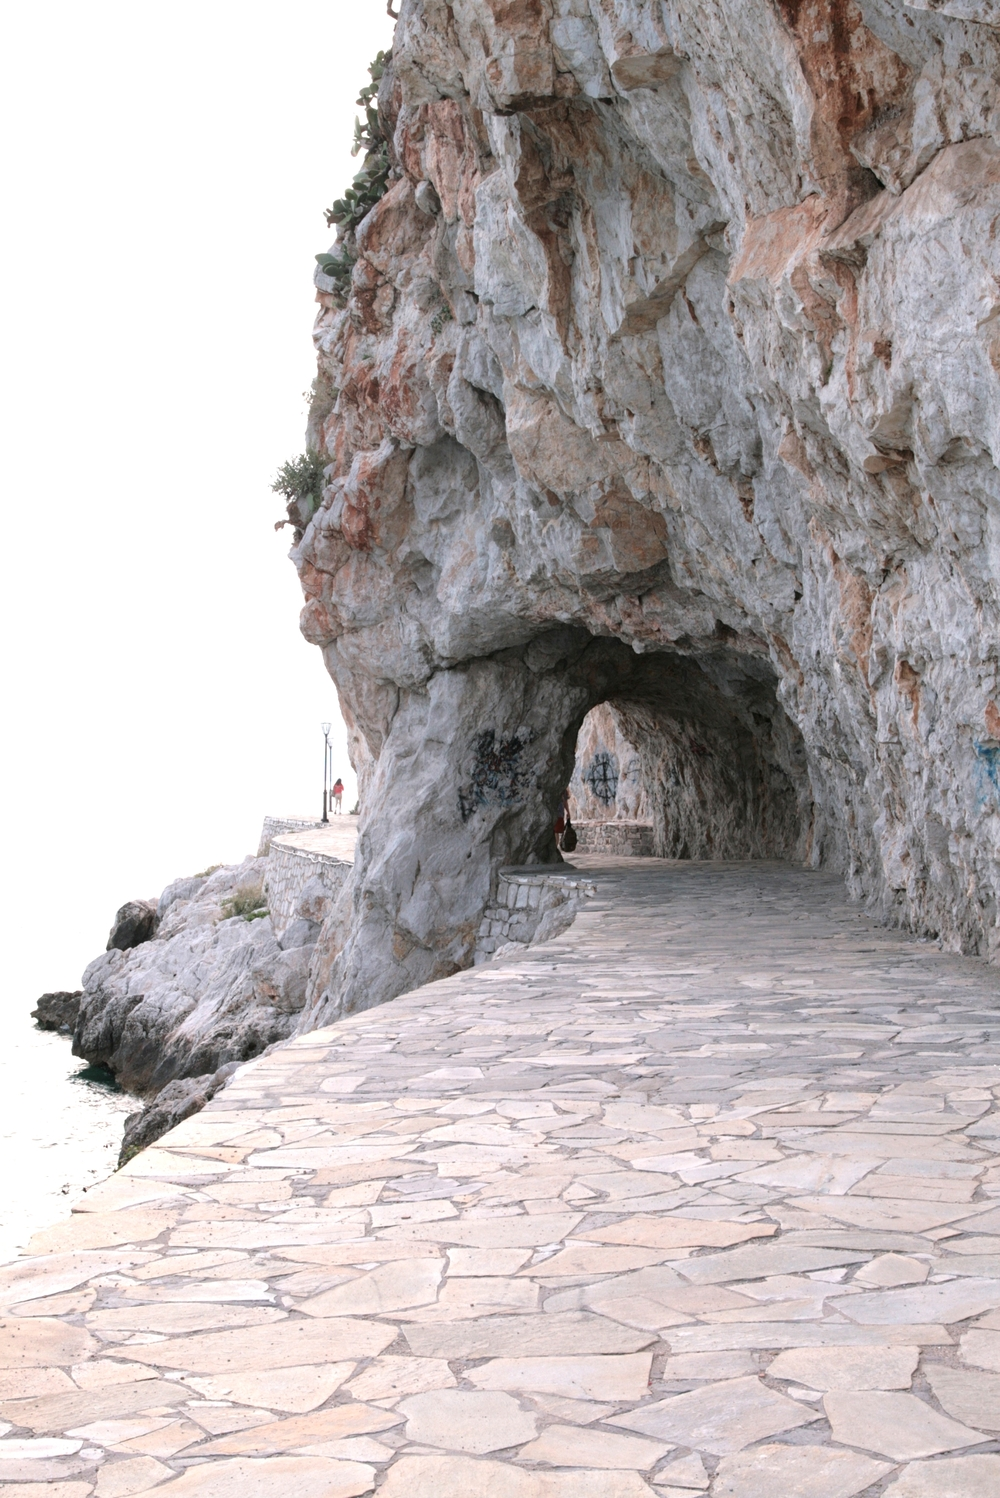 Coastal path in Nafplio, Greece.